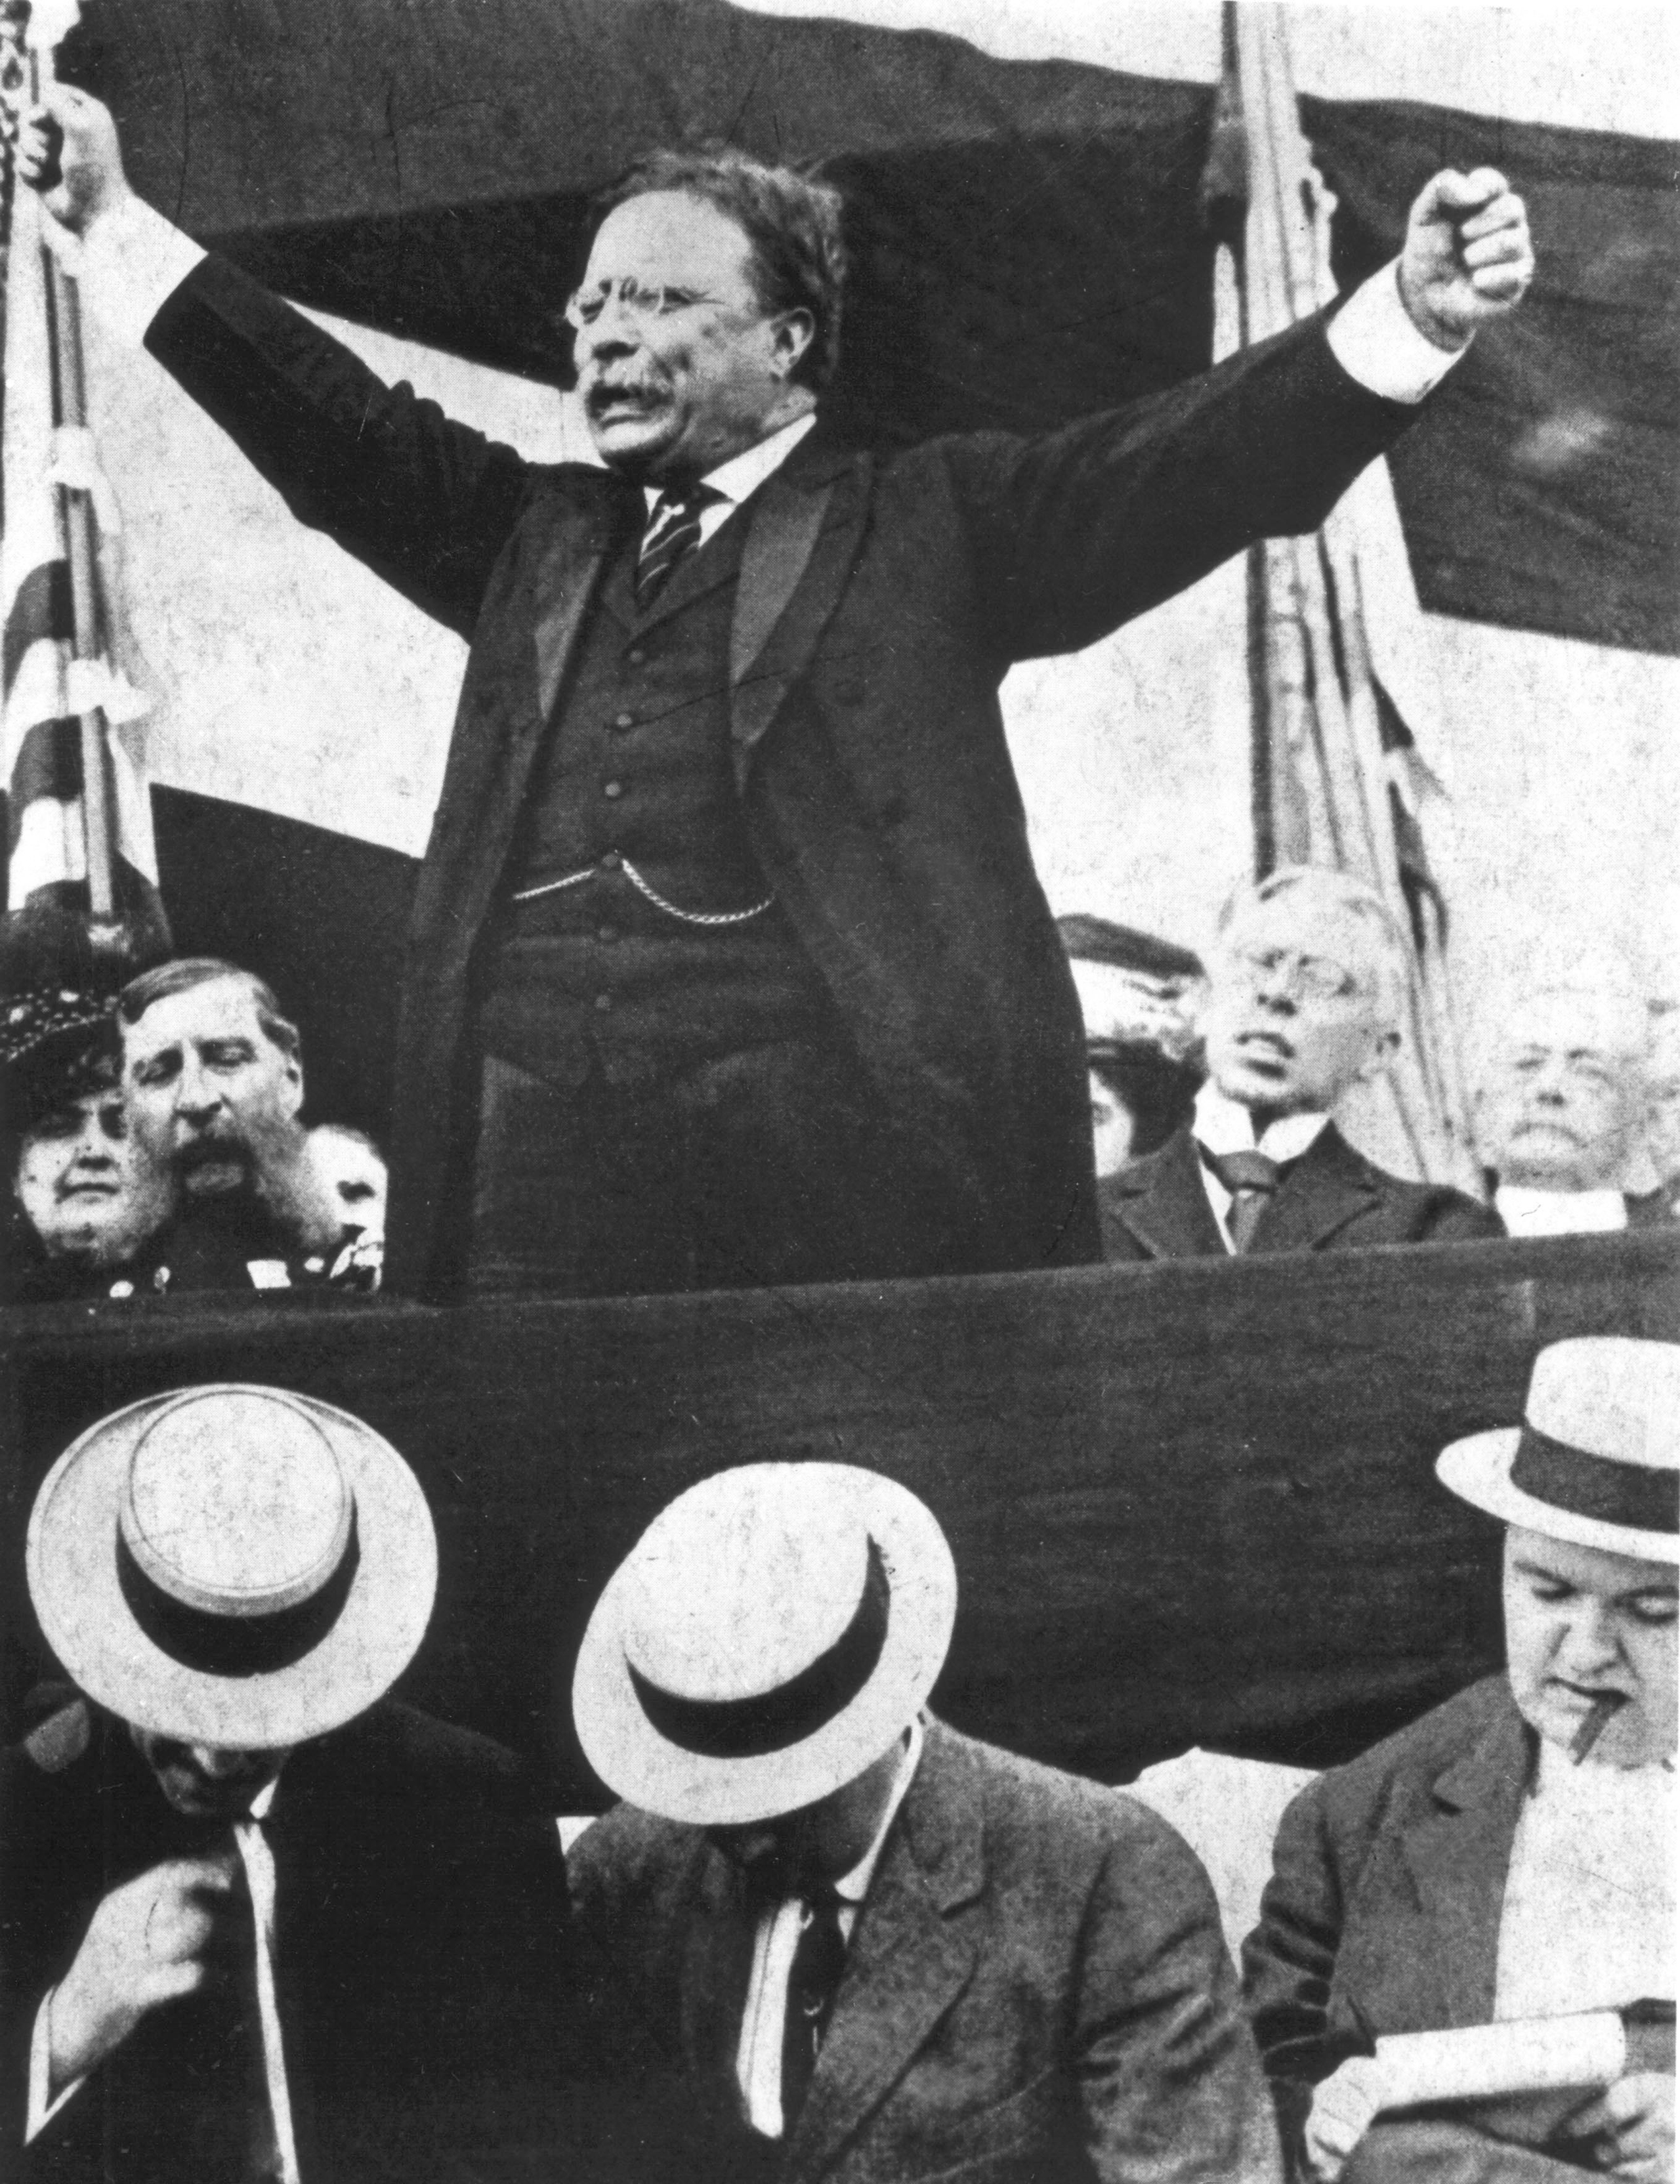 President-elect Theodore Roosevelt gives a speech upon winning the election in 1901.